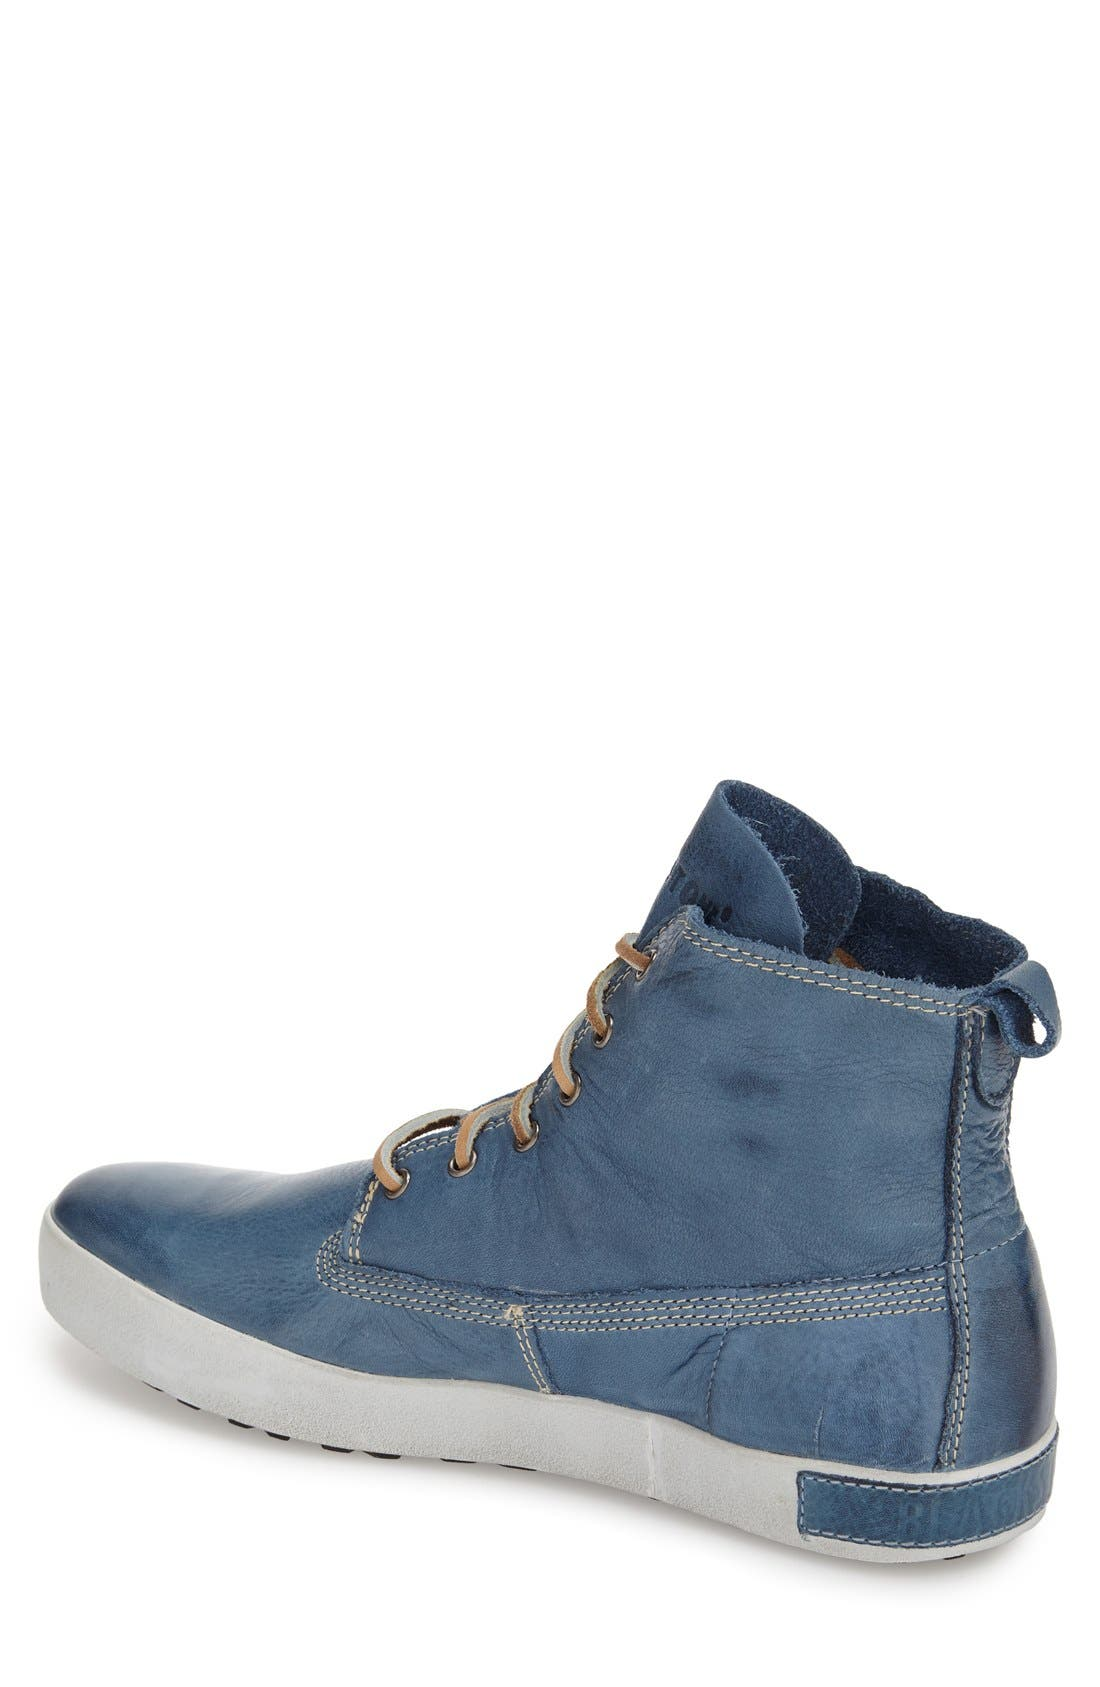 'JM04' Sneaker,                             Alternate thumbnail 4, color,                             Light Indigo Leather